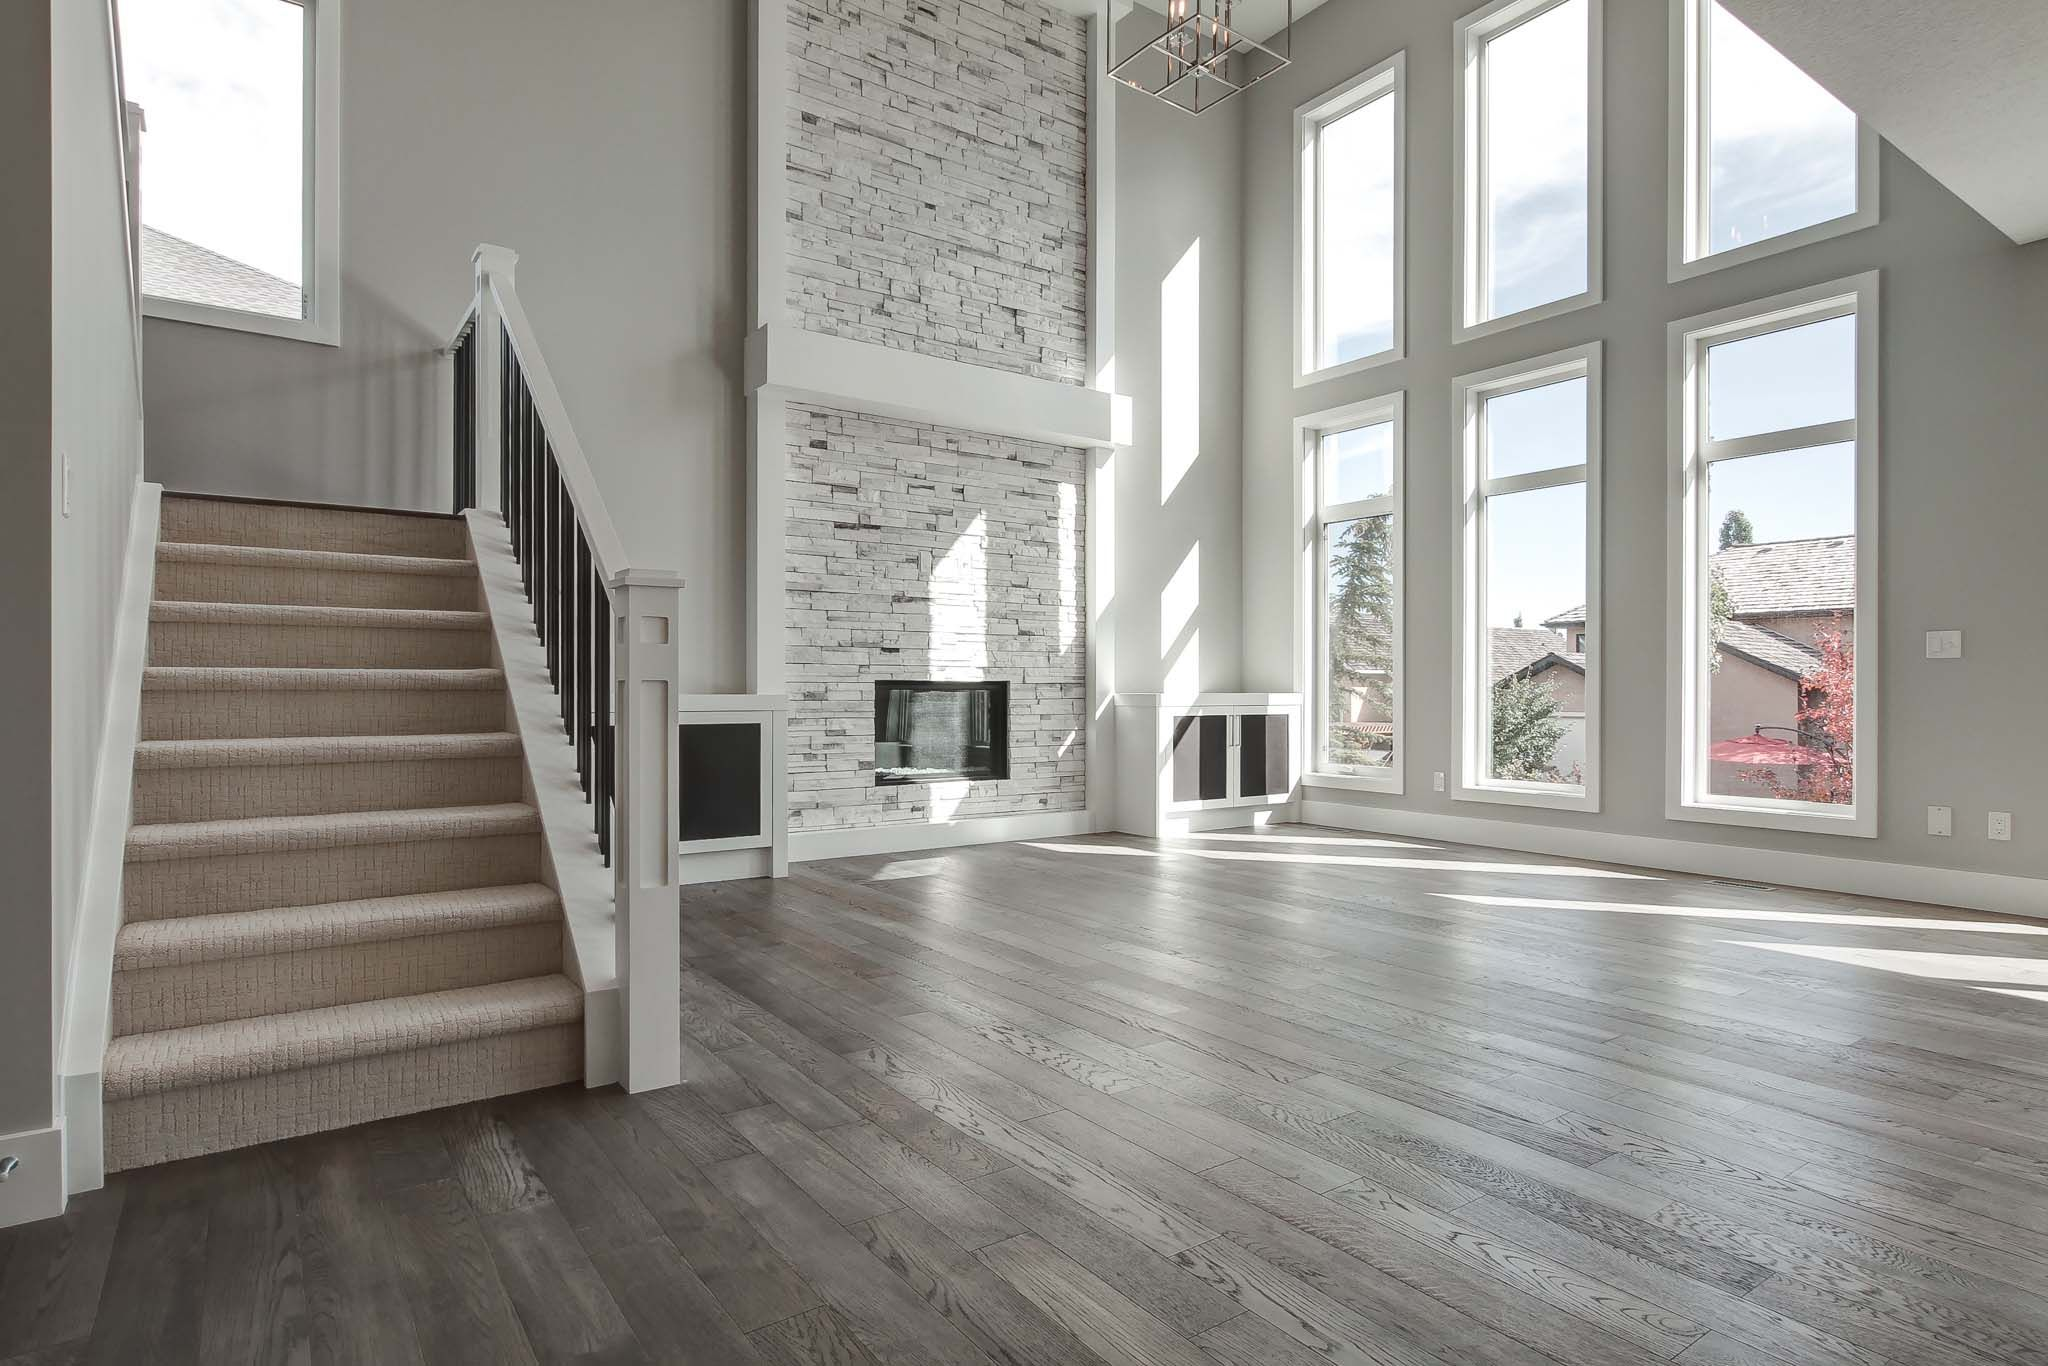 West Point Grove in Calgary, Alberta. Built by Truman. | Someday ...